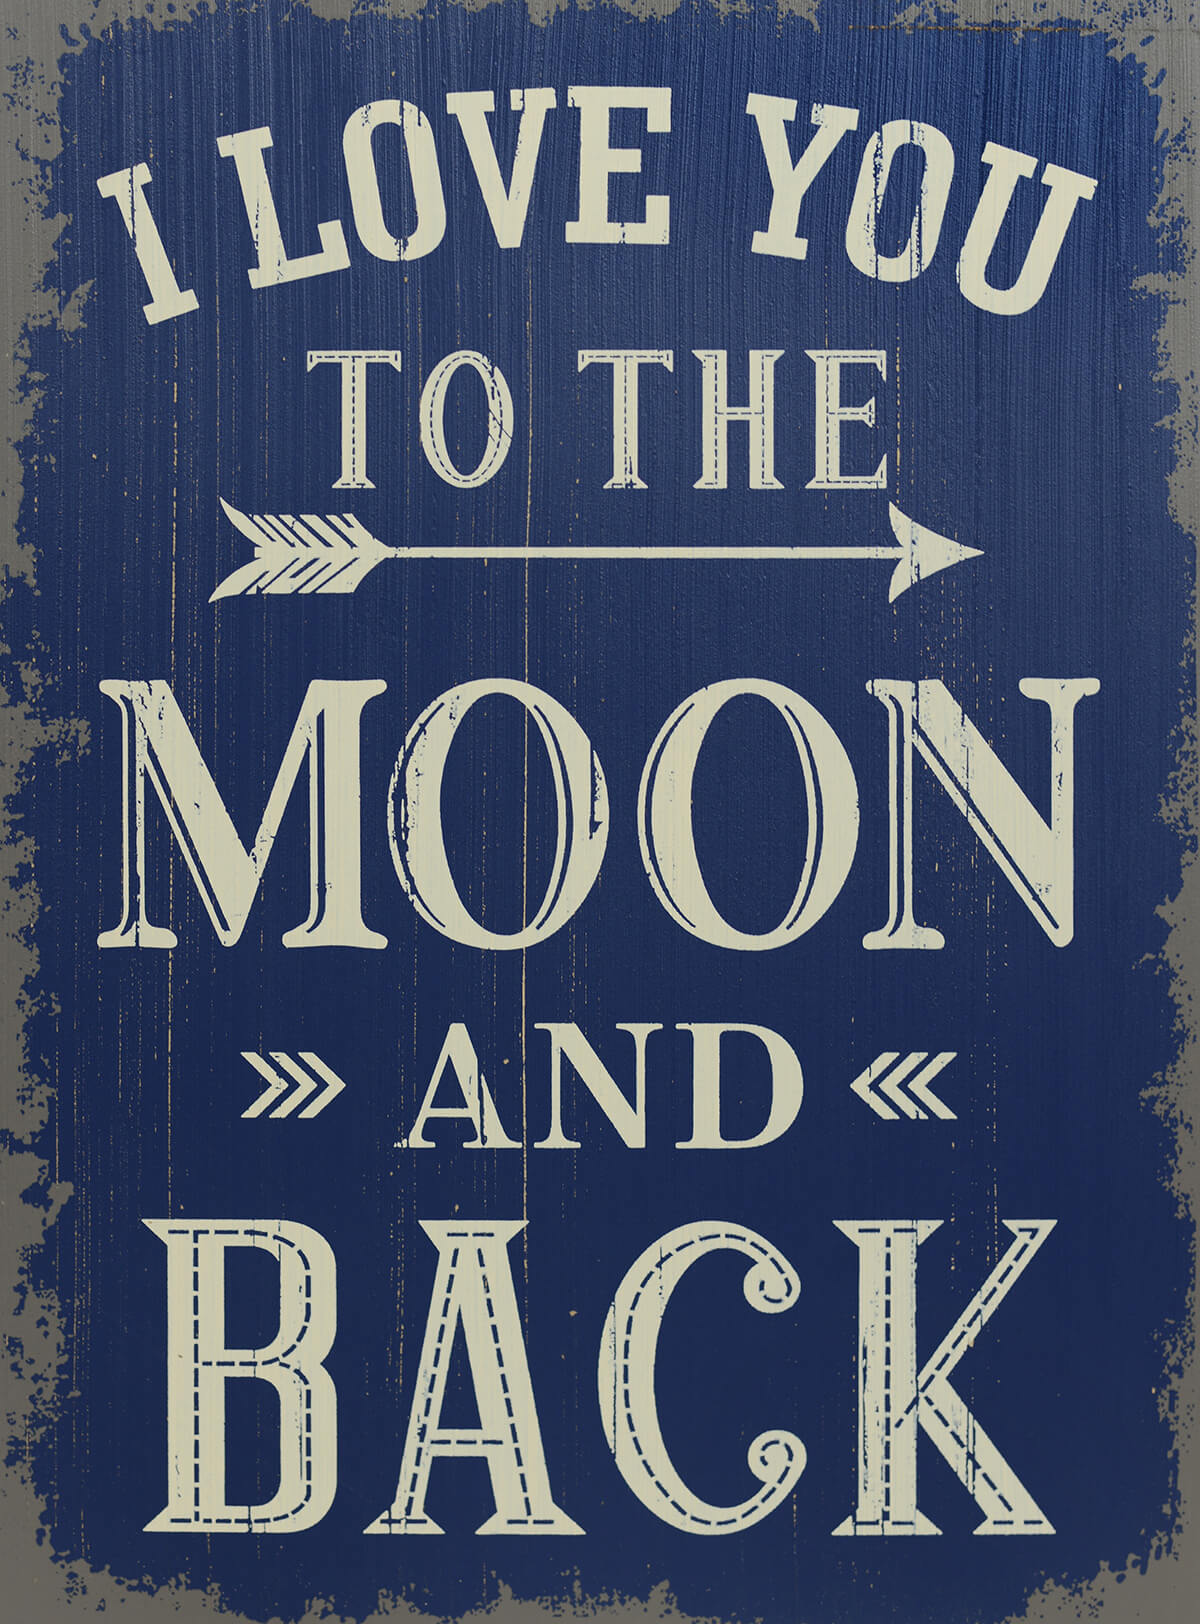 i love you to the moon and back 19 sign saveoncrafts. Black Bedroom Furniture Sets. Home Design Ideas